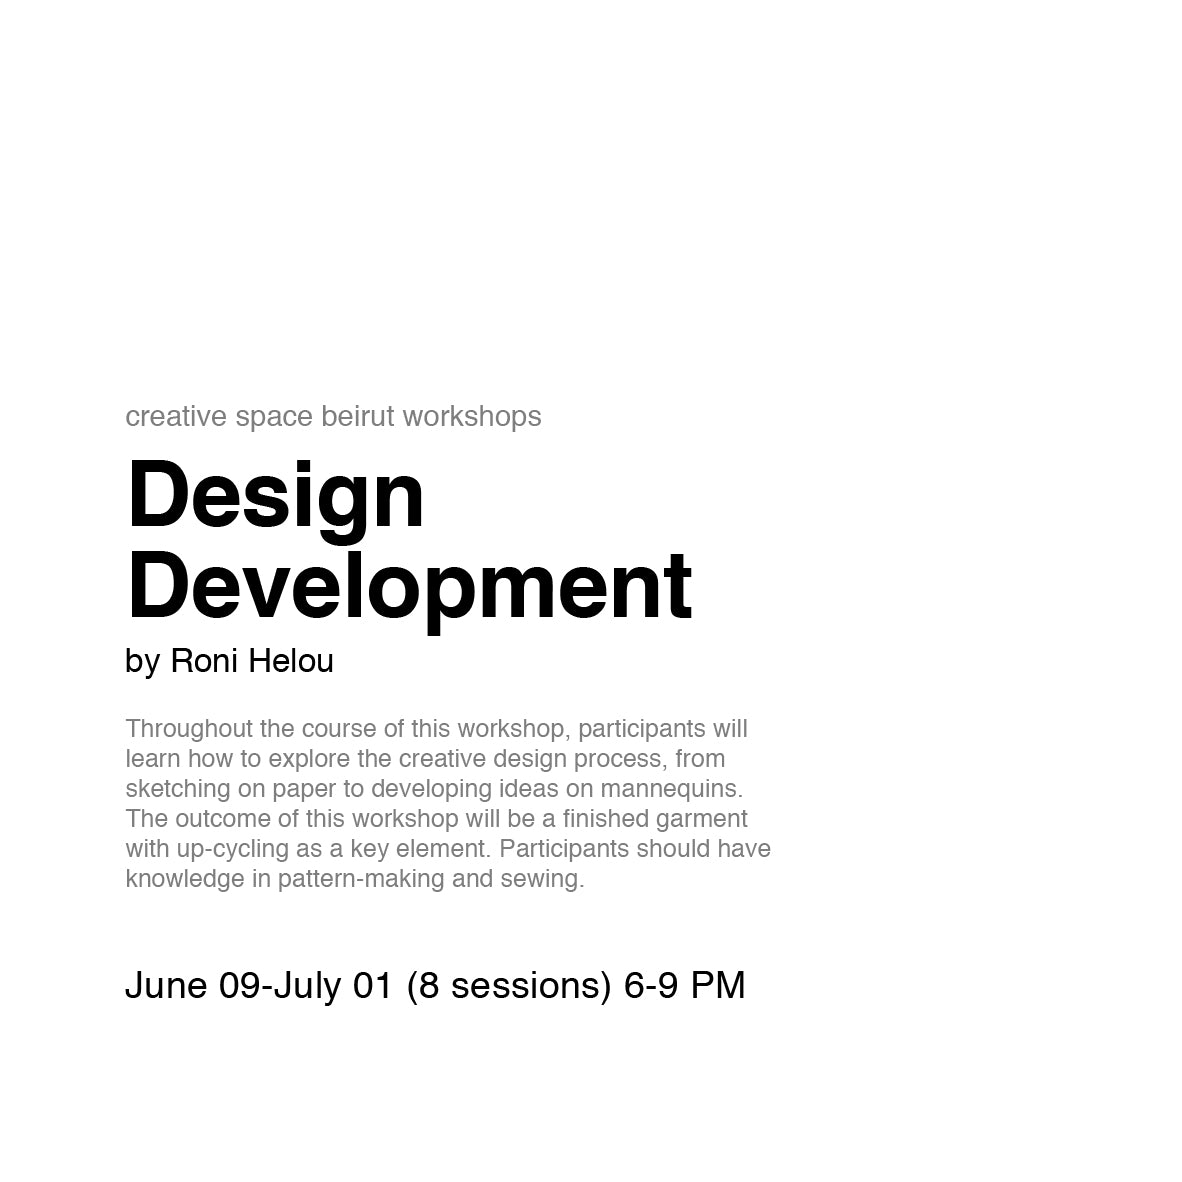 Design Development by Roni Helou